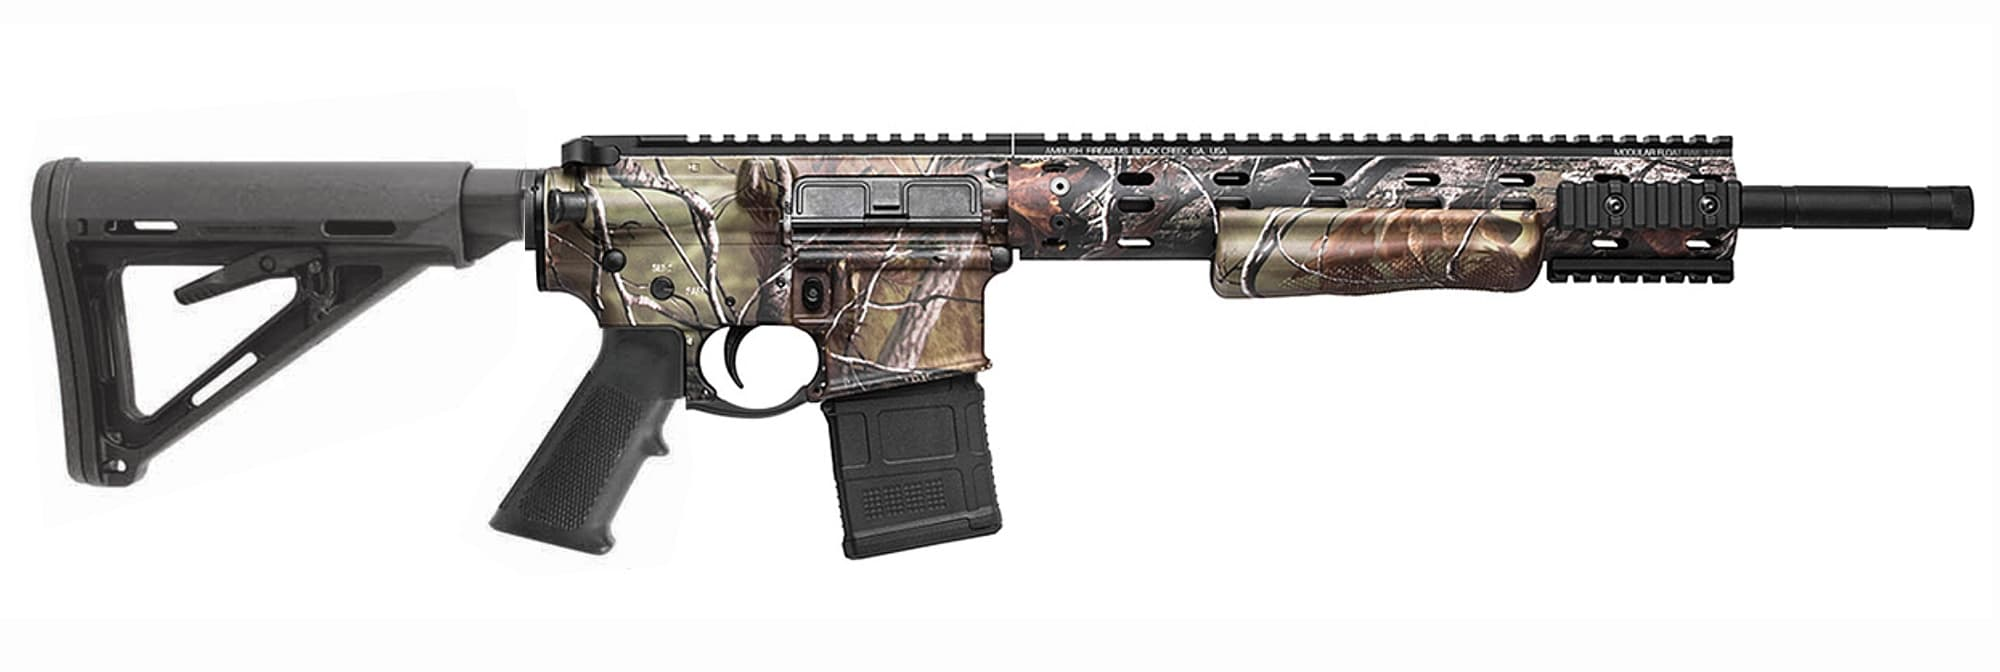 Ambush Firearms Rifle